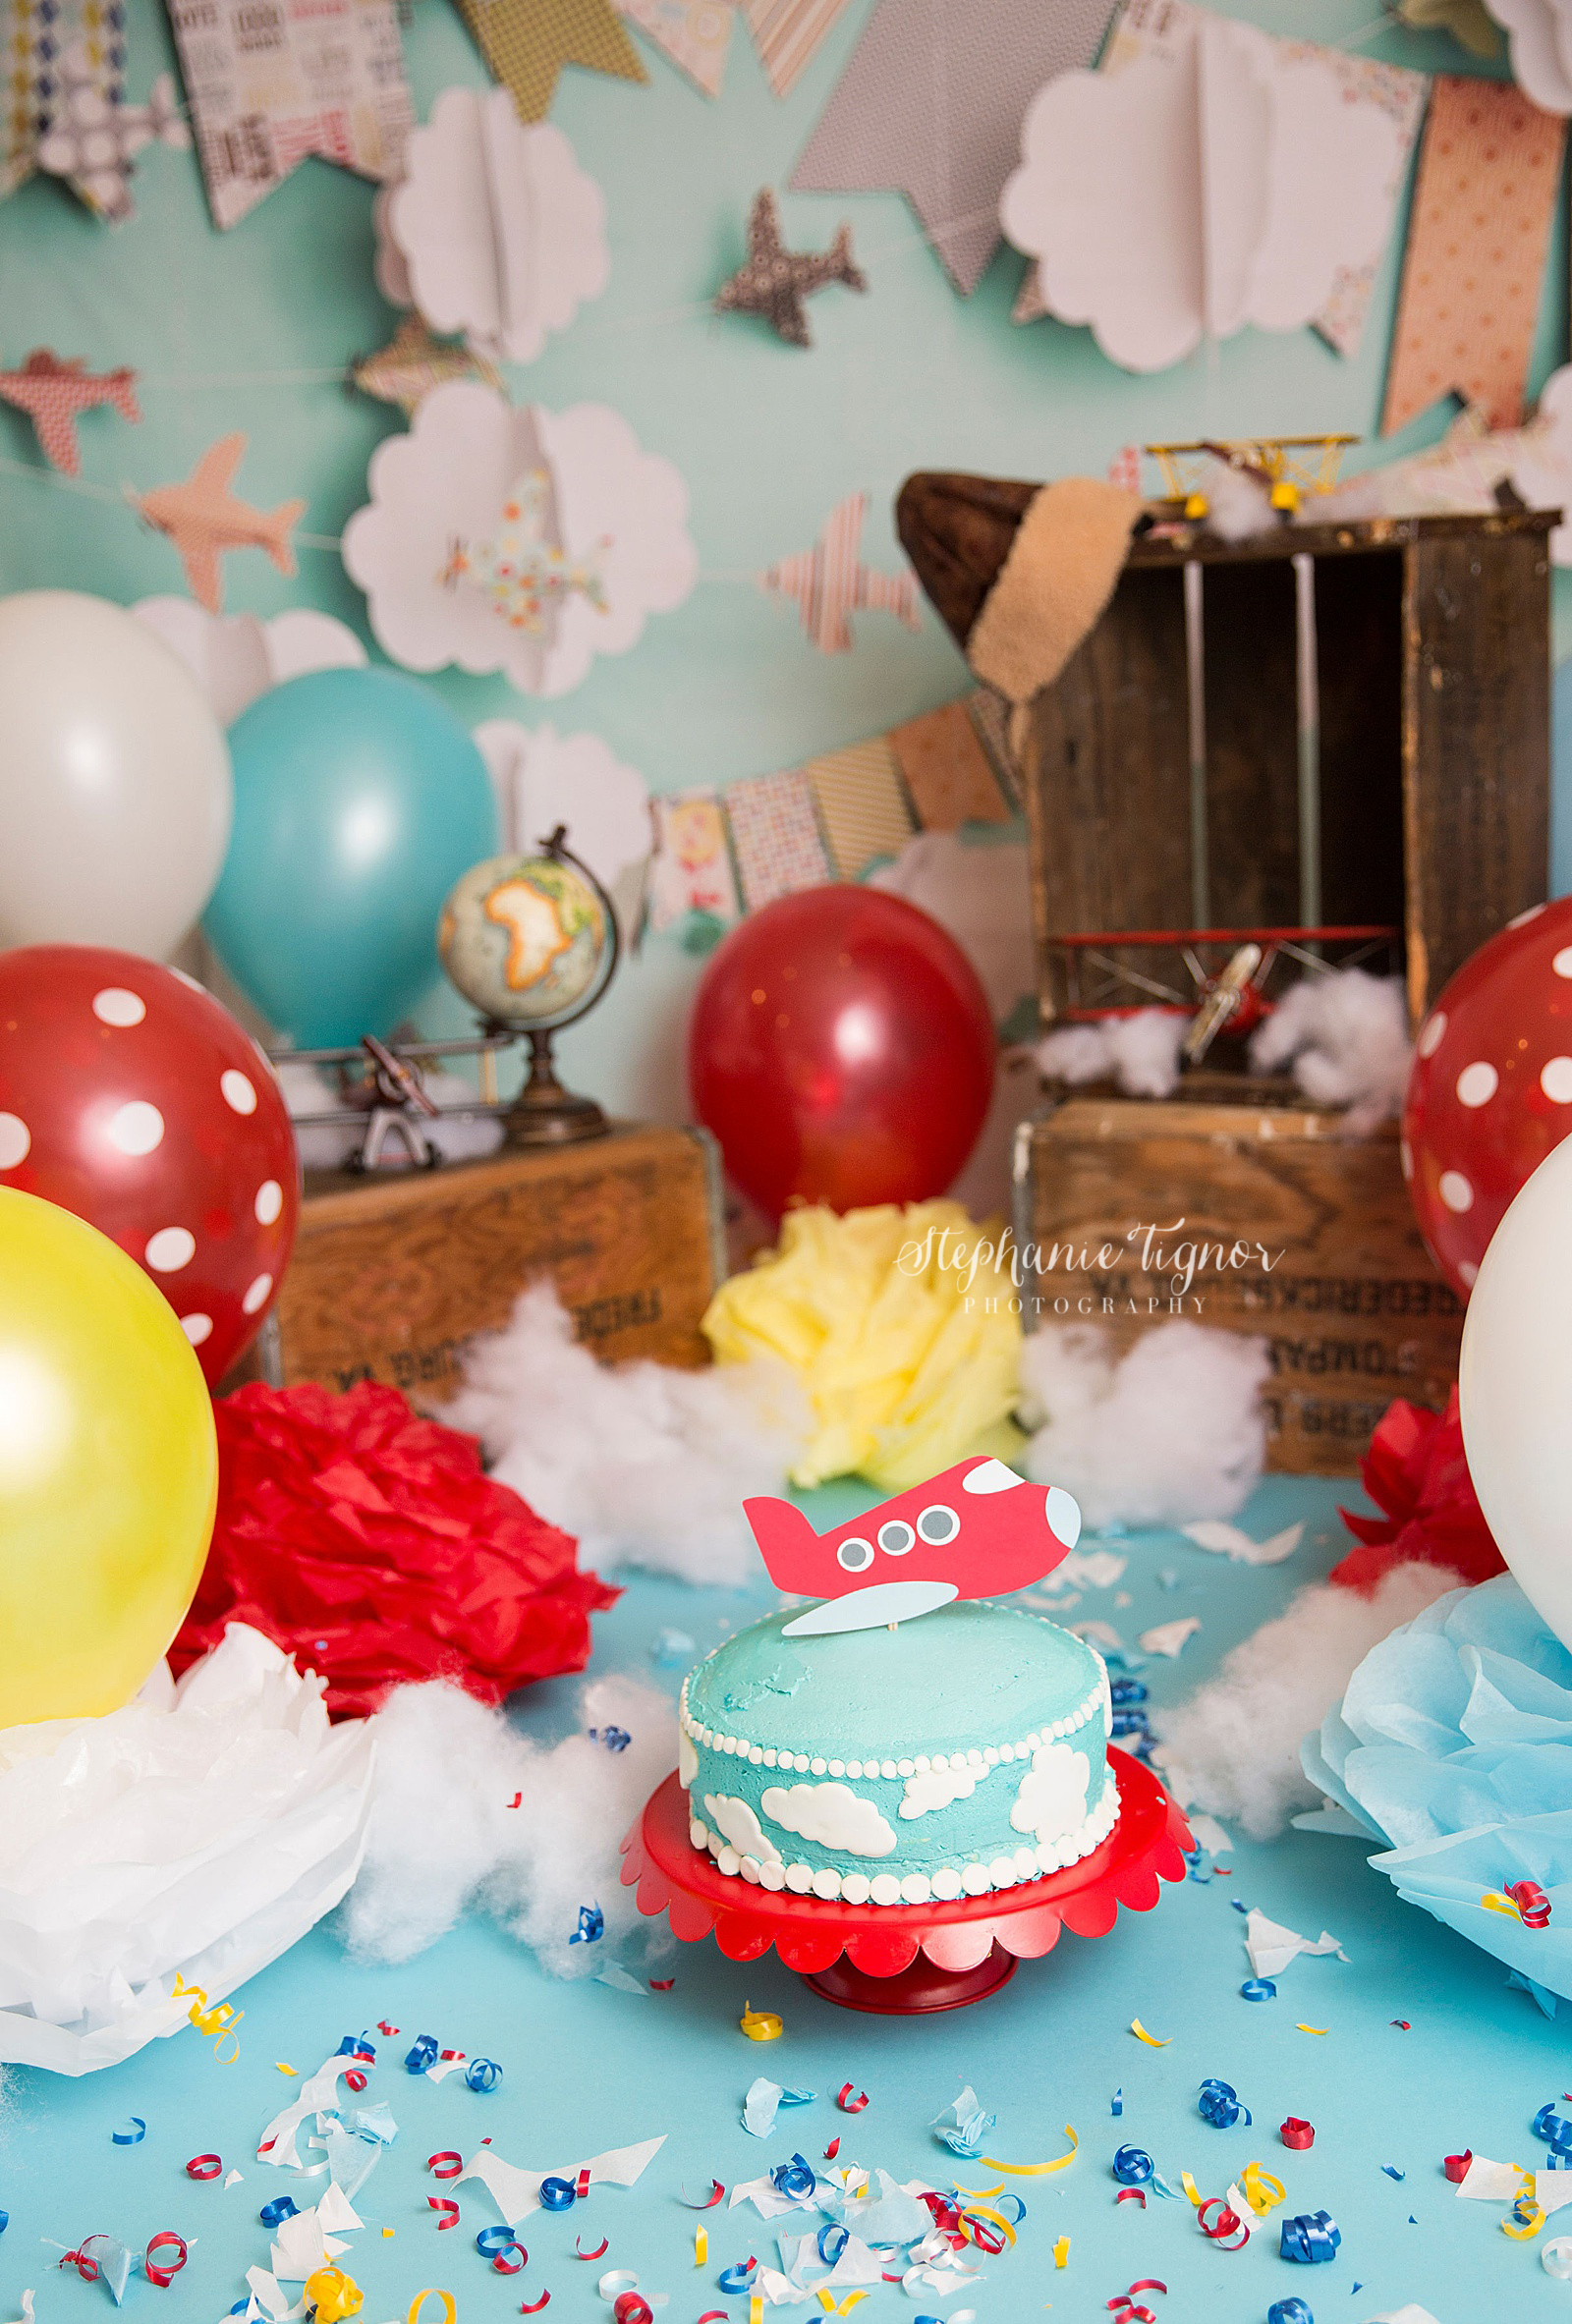 Stephanie Tignor Photography | Fredericksburg VA Cake Smash Photographer | Warrenton VA Cake Smash Photographer | Stafford VA Cake Smash Photographer | Cake Smash Photographer | Travel airplane inspired cake smash